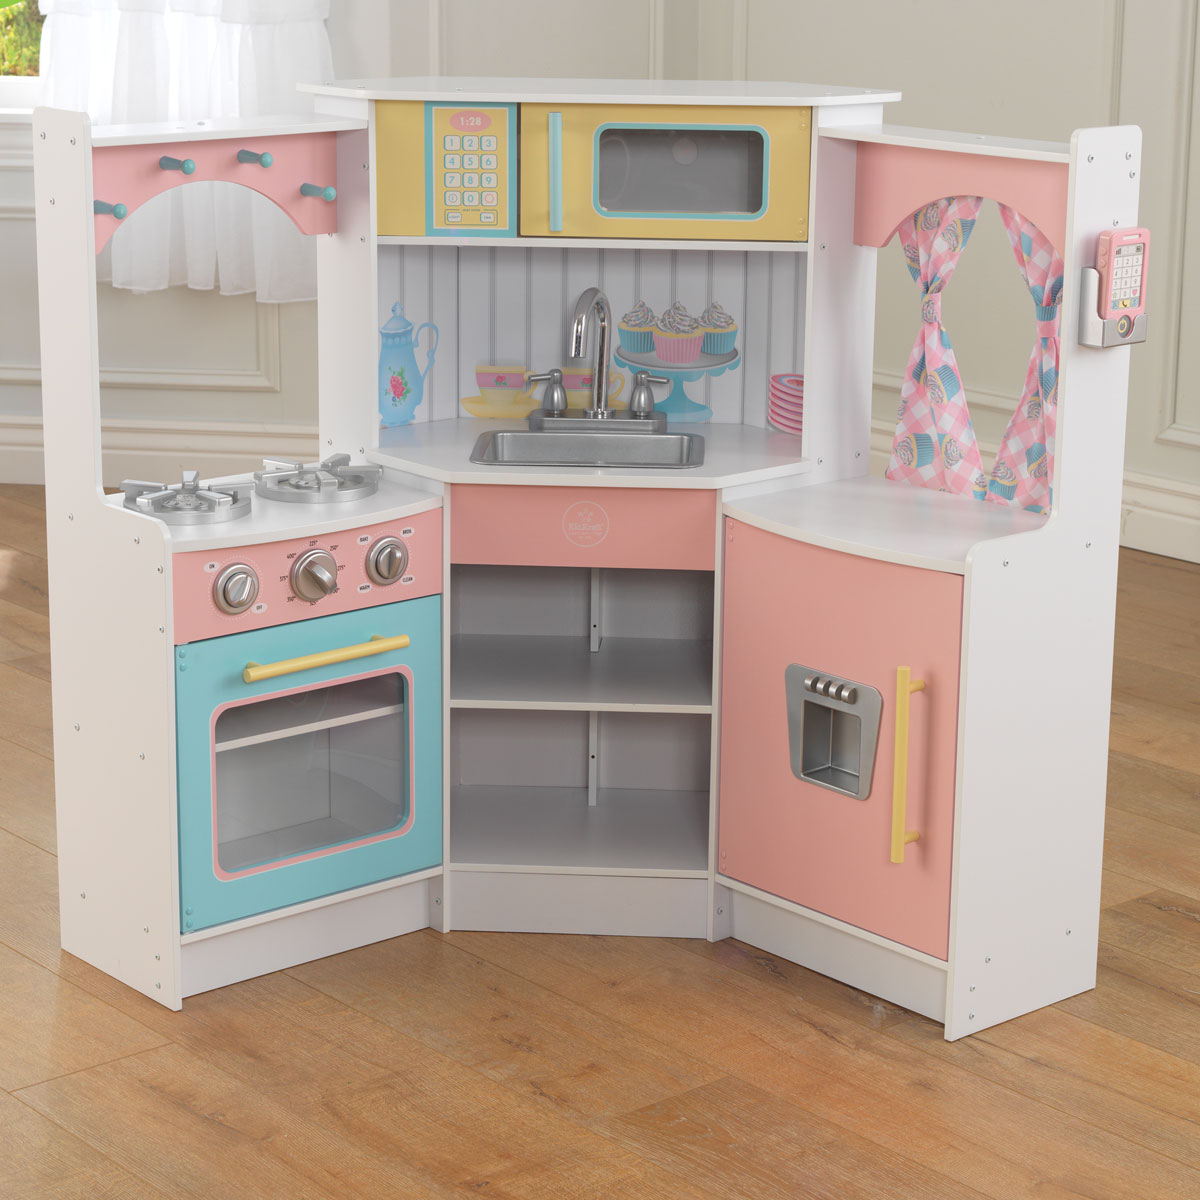 Spielküche Kidkraft Deluxe Corner Play Kitchen 53368 Pirum